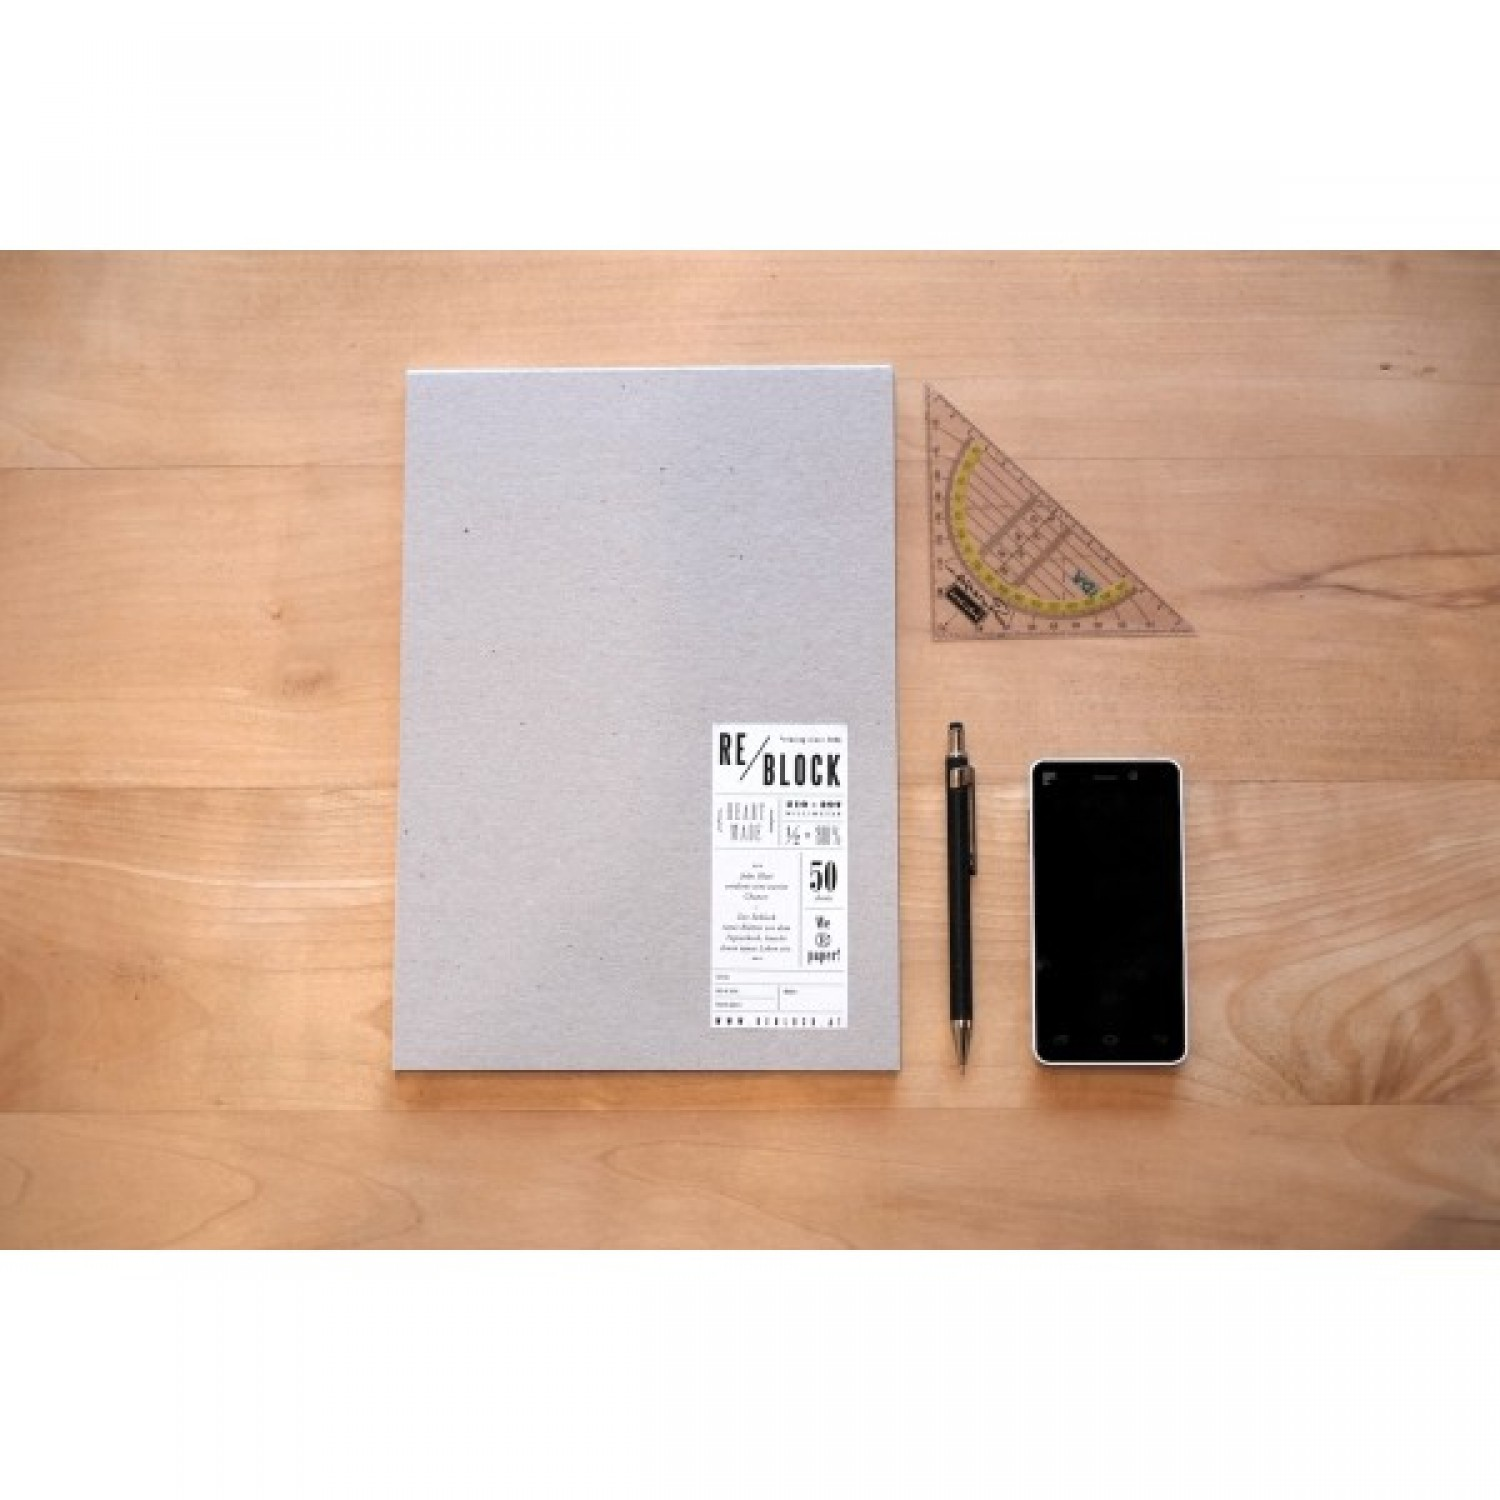 Upcycling Notepad | Reblock